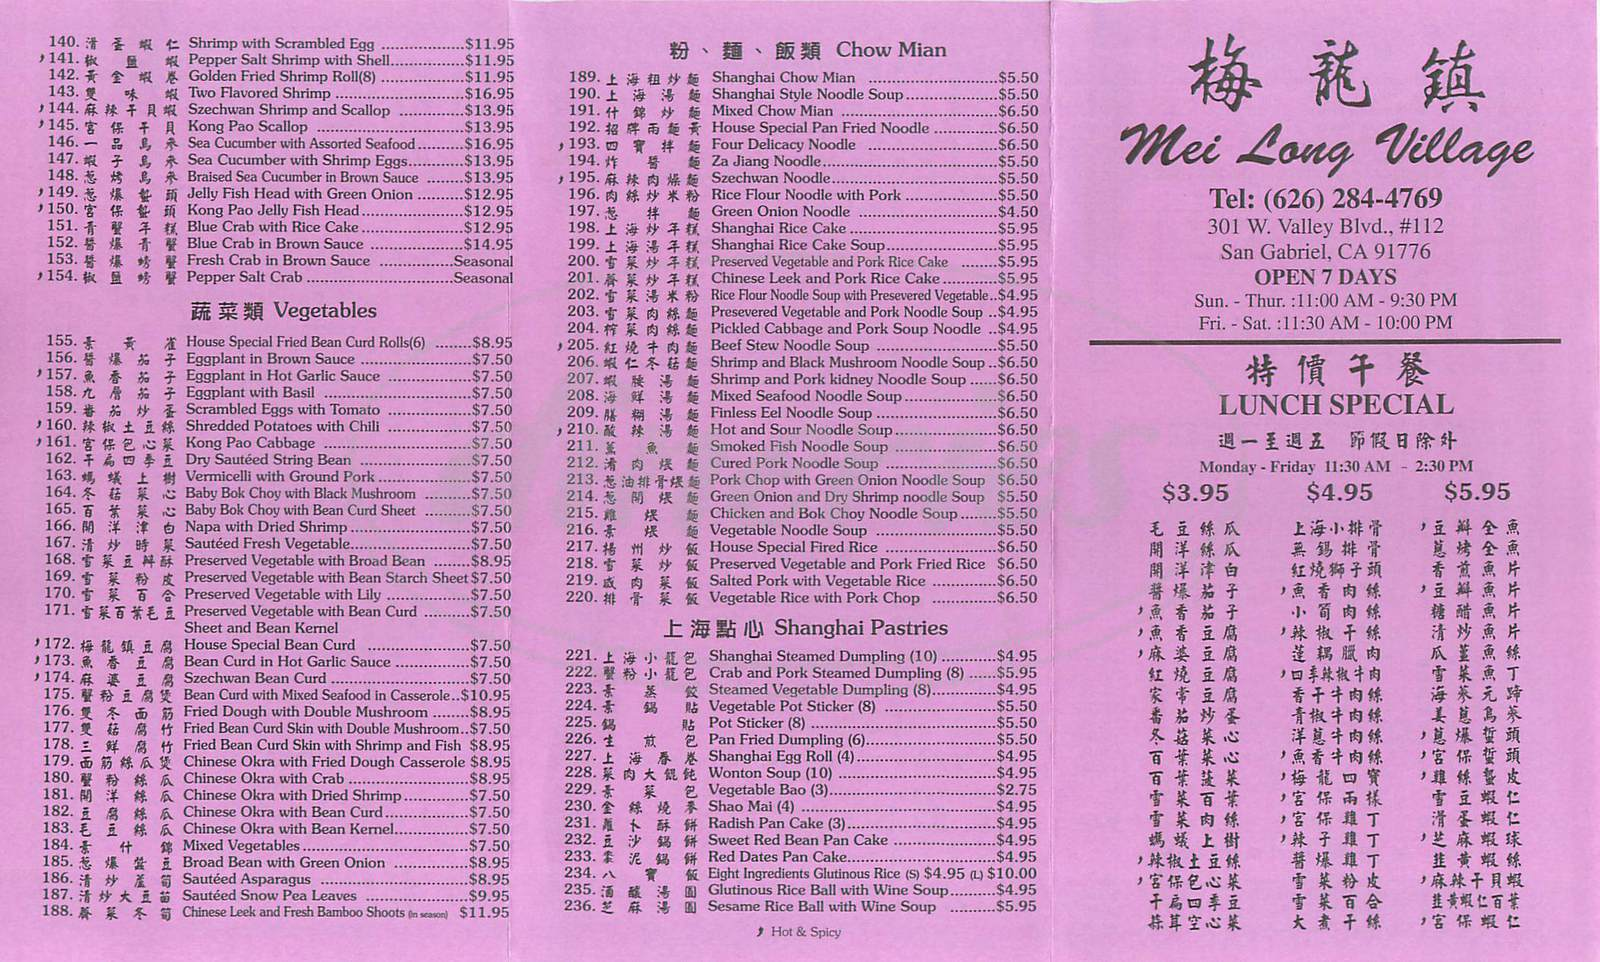 menu for Mei Long Village